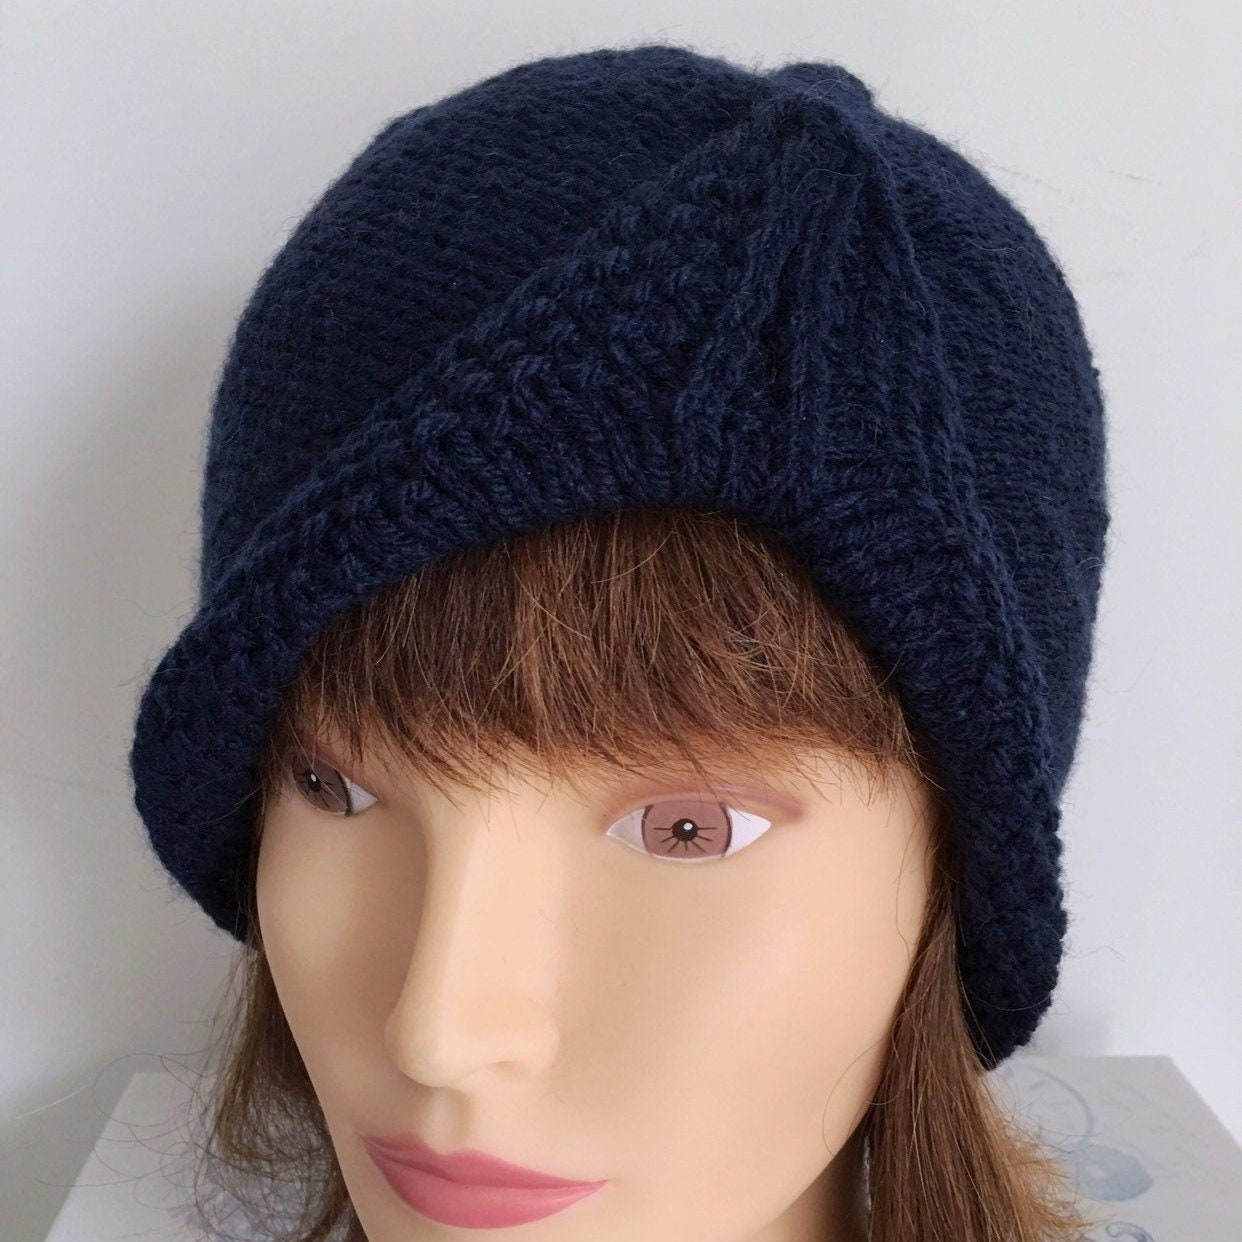 Ladies Blue Turban Beanie Hat Navy 1950s Womens Hat Knitted  366eaf4a050